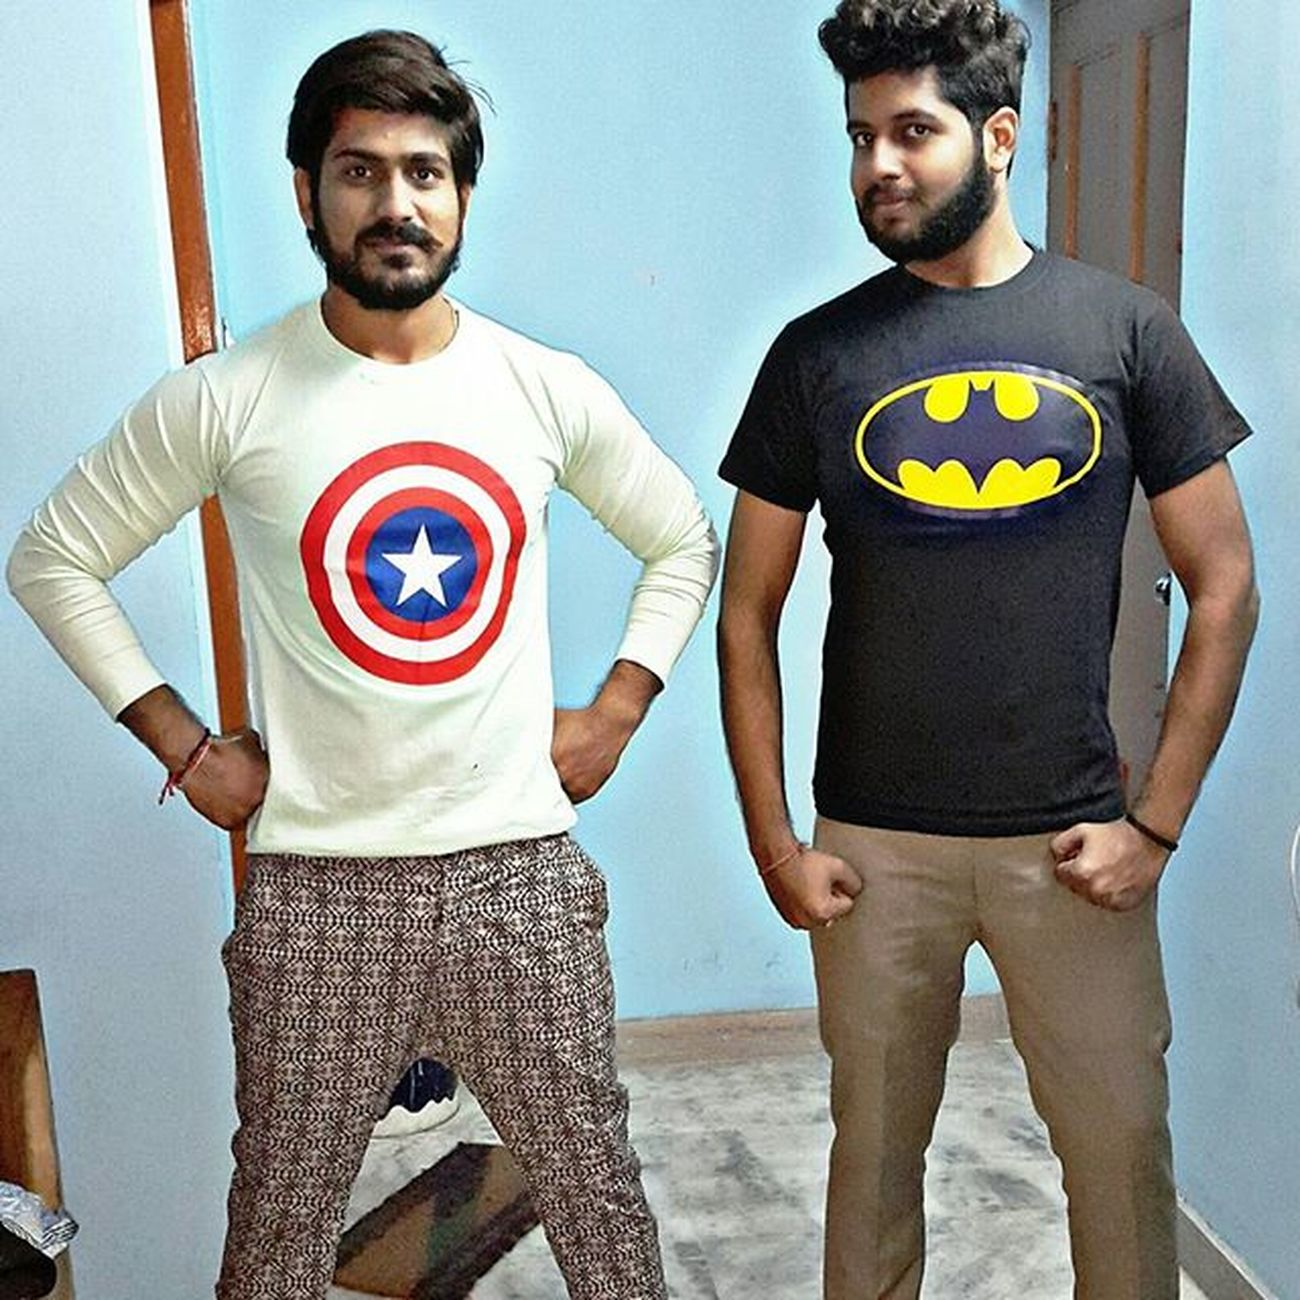 Captianamerica Batman Tees . Collection Of Super Hero Tees😬 . Beards Bearded Beard Beardup Beardedguy Beardmaniac Envybeards Beardthefuckup BeardPowers Superheroes Tflers Instamood Instaupload Smile Love Instagram Beardsofinstagram Beardlove LoveOfBeards